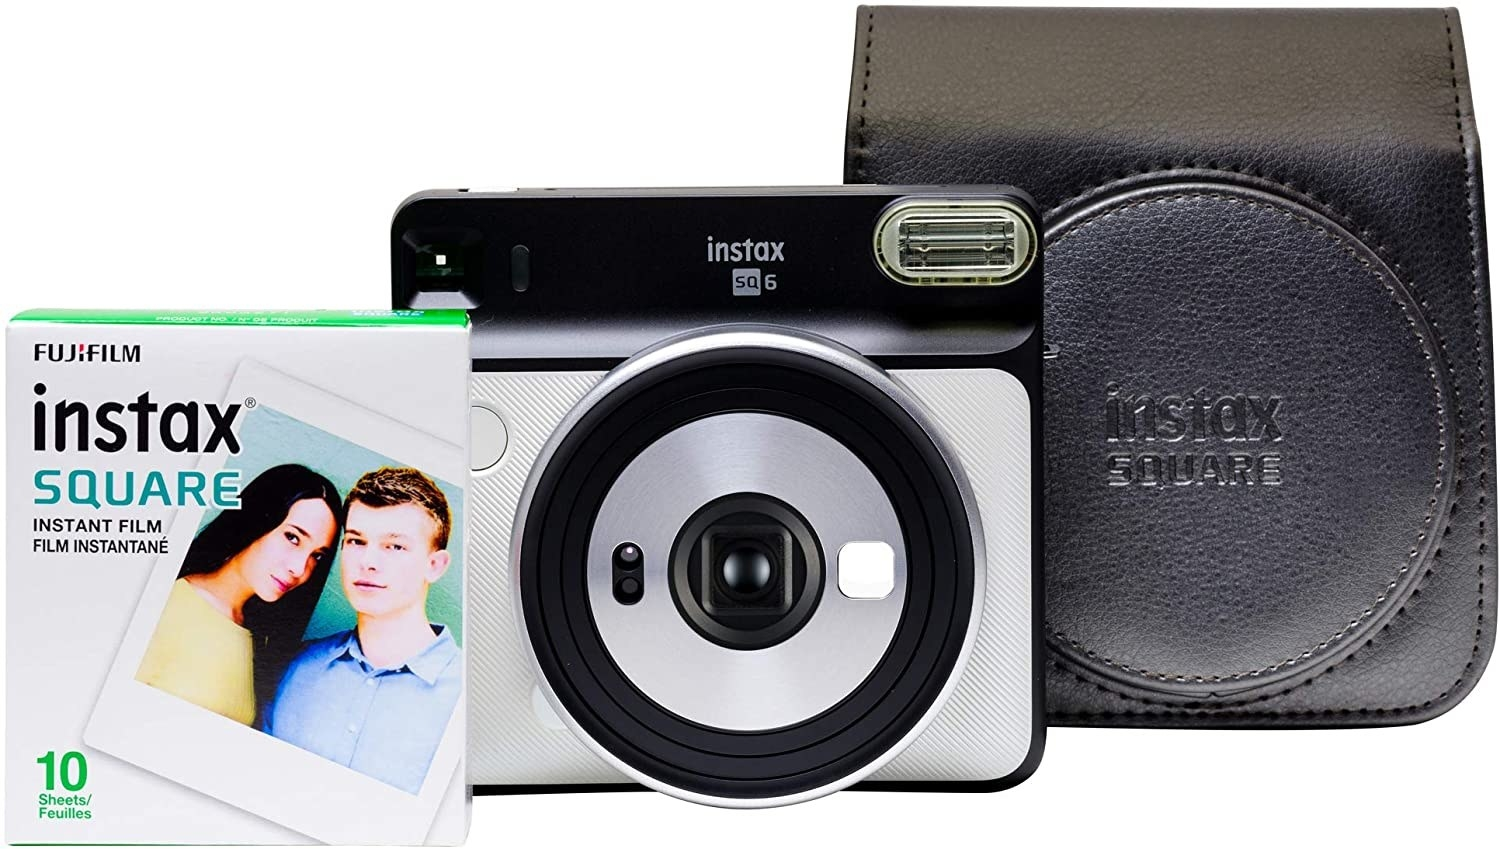 The camera, film, and case